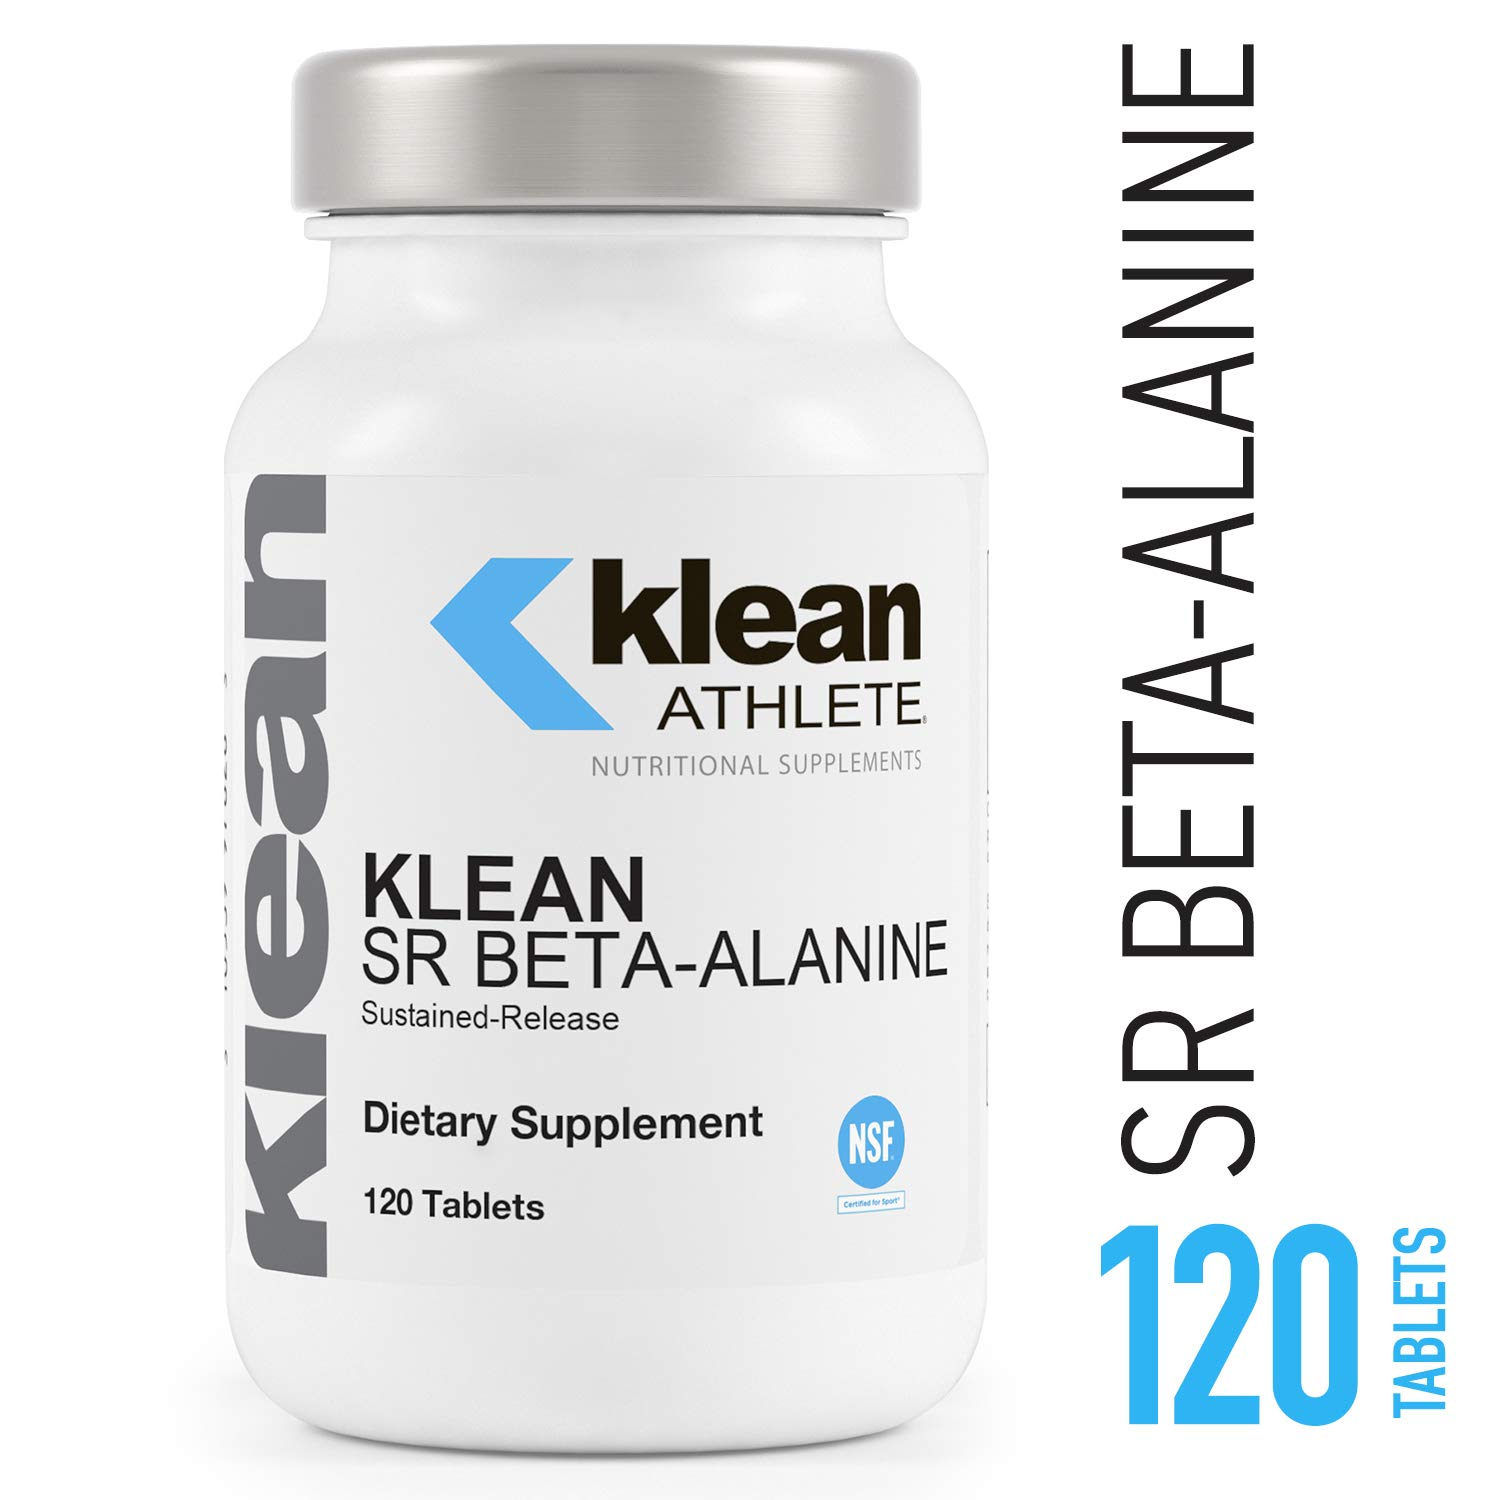 Klean Athlete - Klean SR Beta-Alanine (Sustained Release) - Delays Fatigue, Supports Muscle Endurance* - 120 Tablets by Klean Athlete